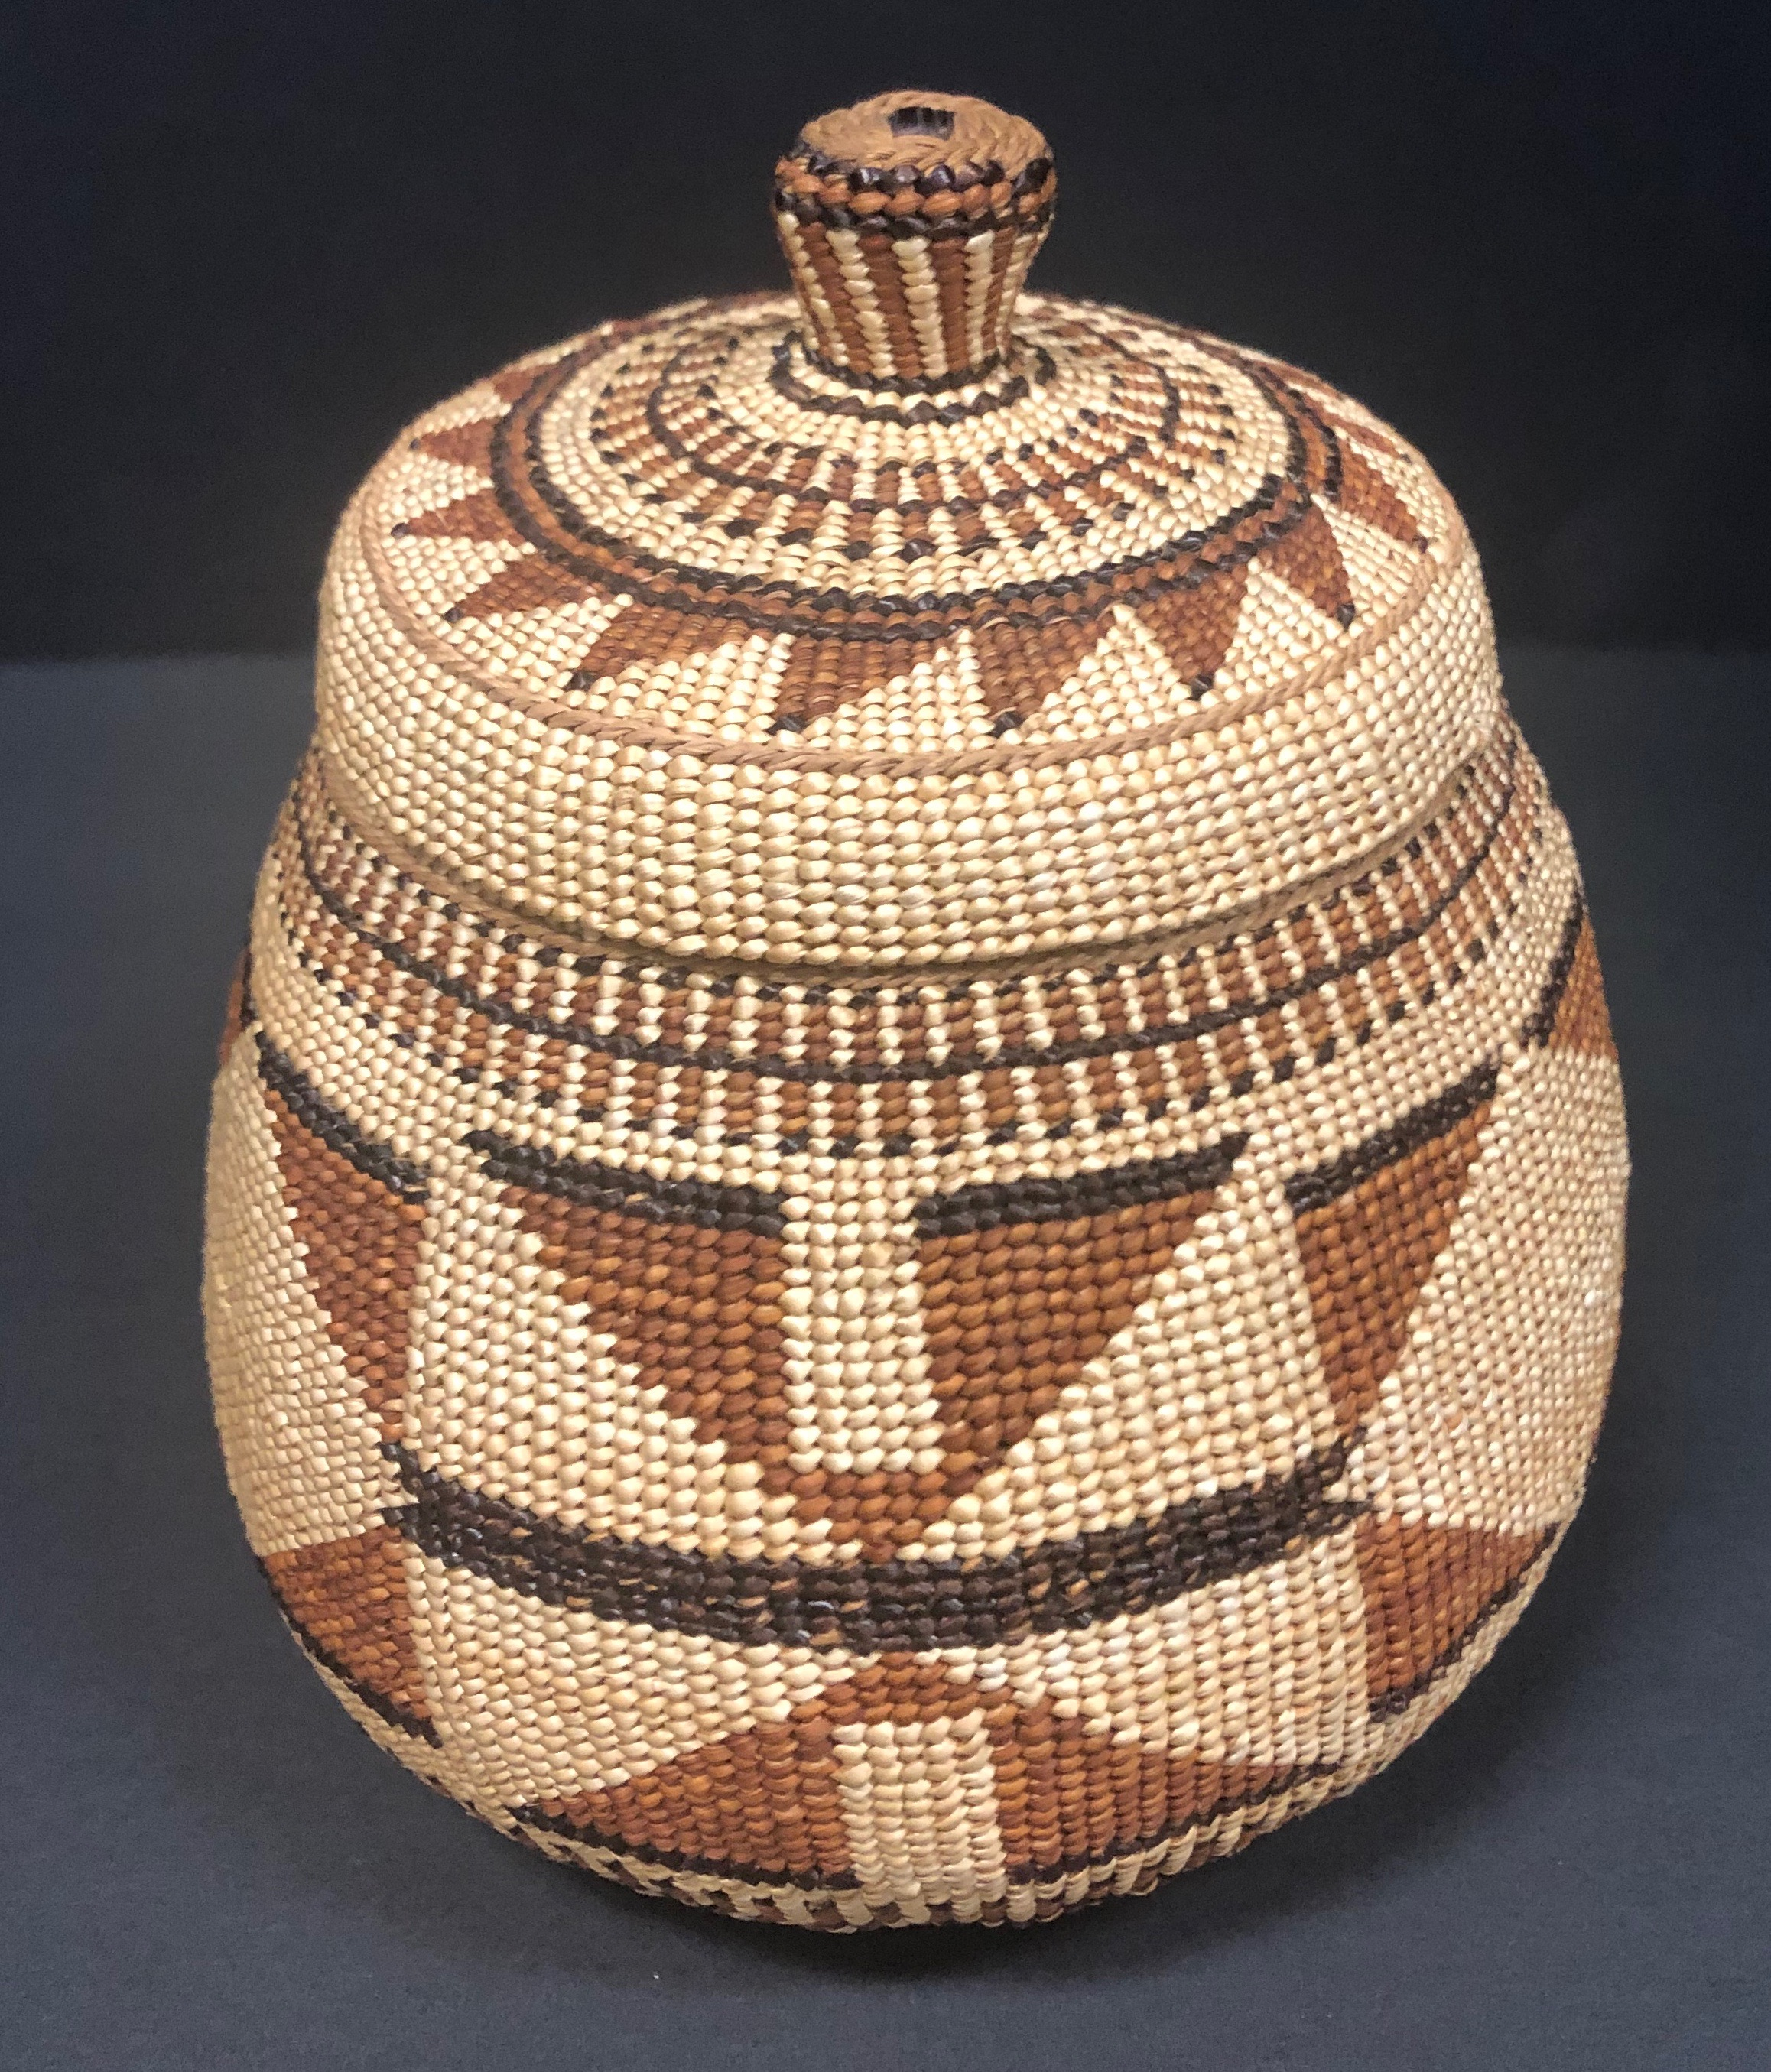 Hupa Area Karuk Native American Indian Basket for Sale at Red Mesa Gallery Image 001